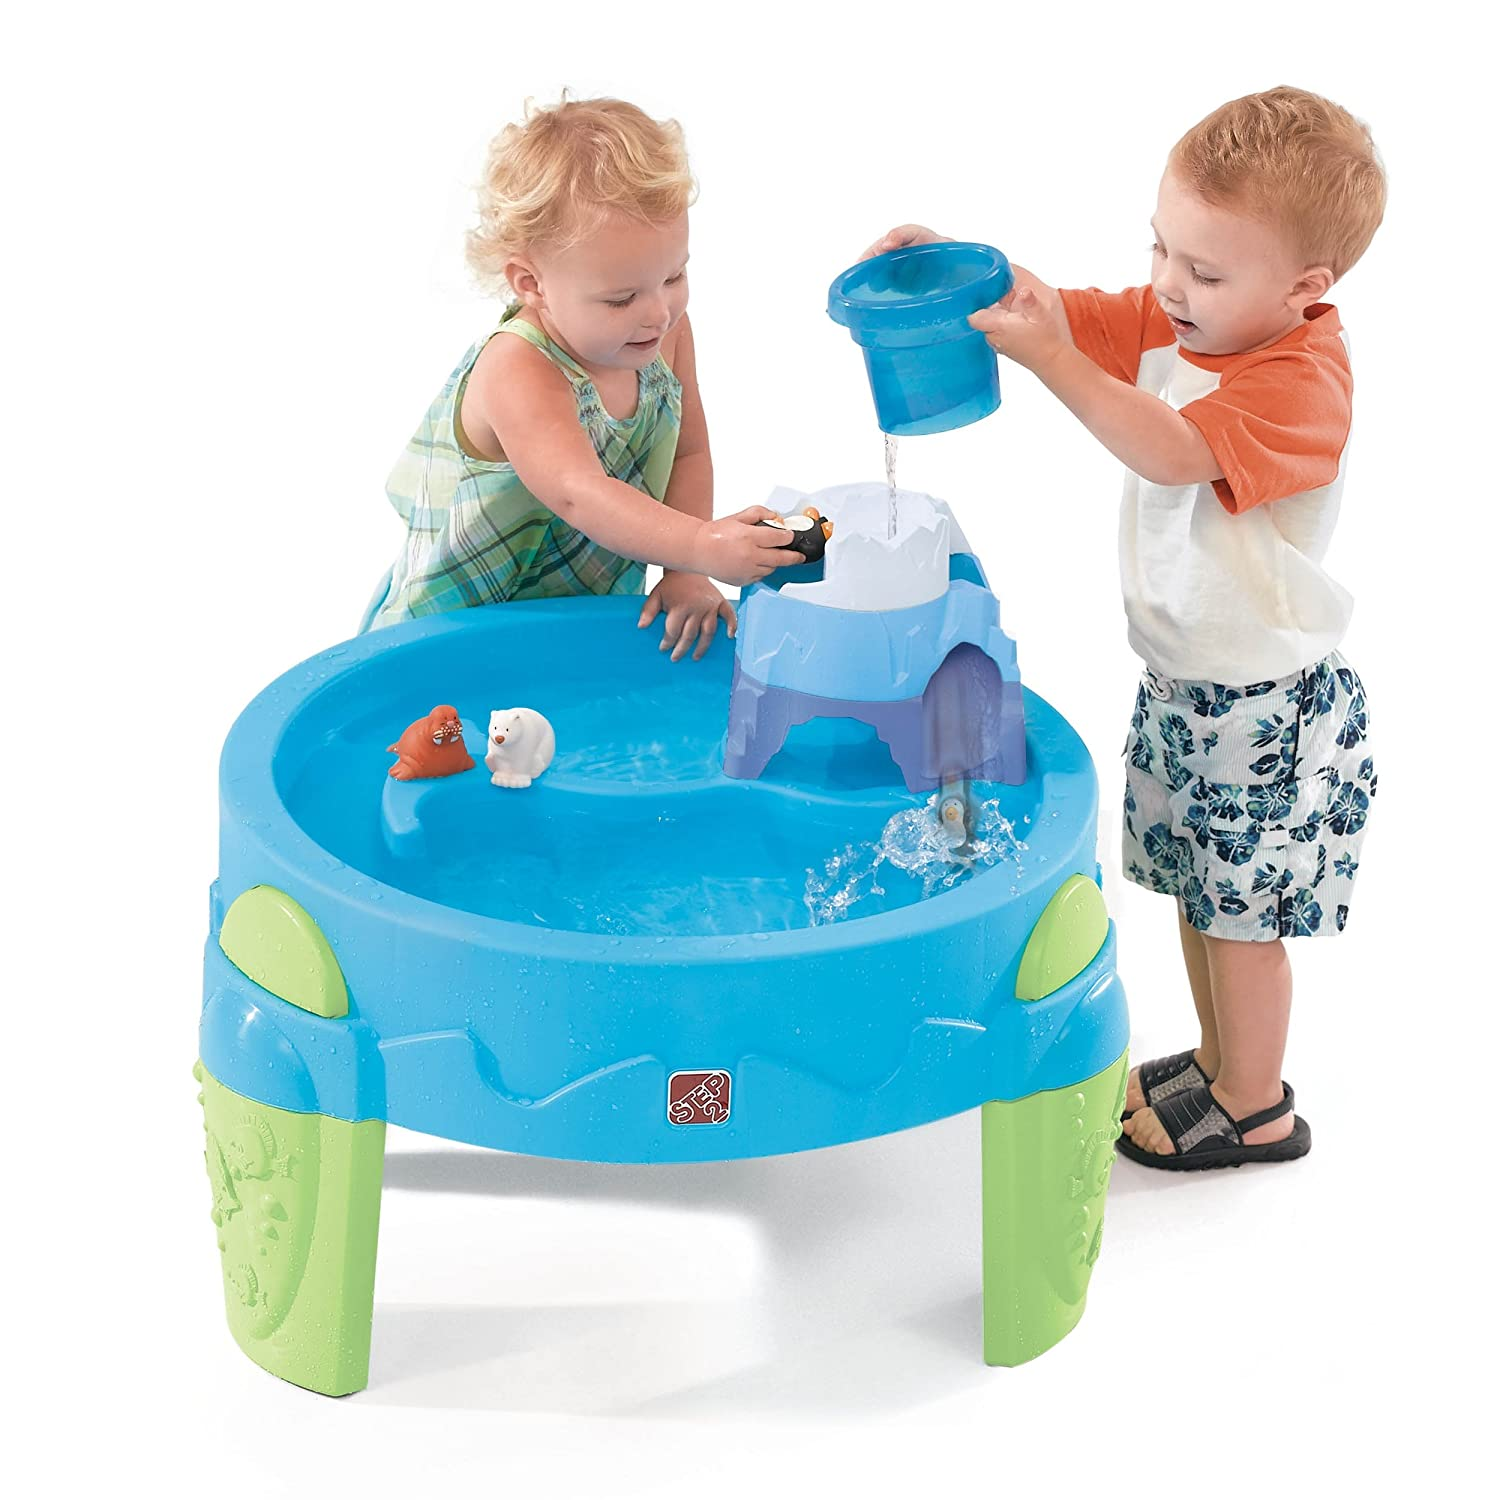 Outdoor play Summer toy questions 1 5 2 years old